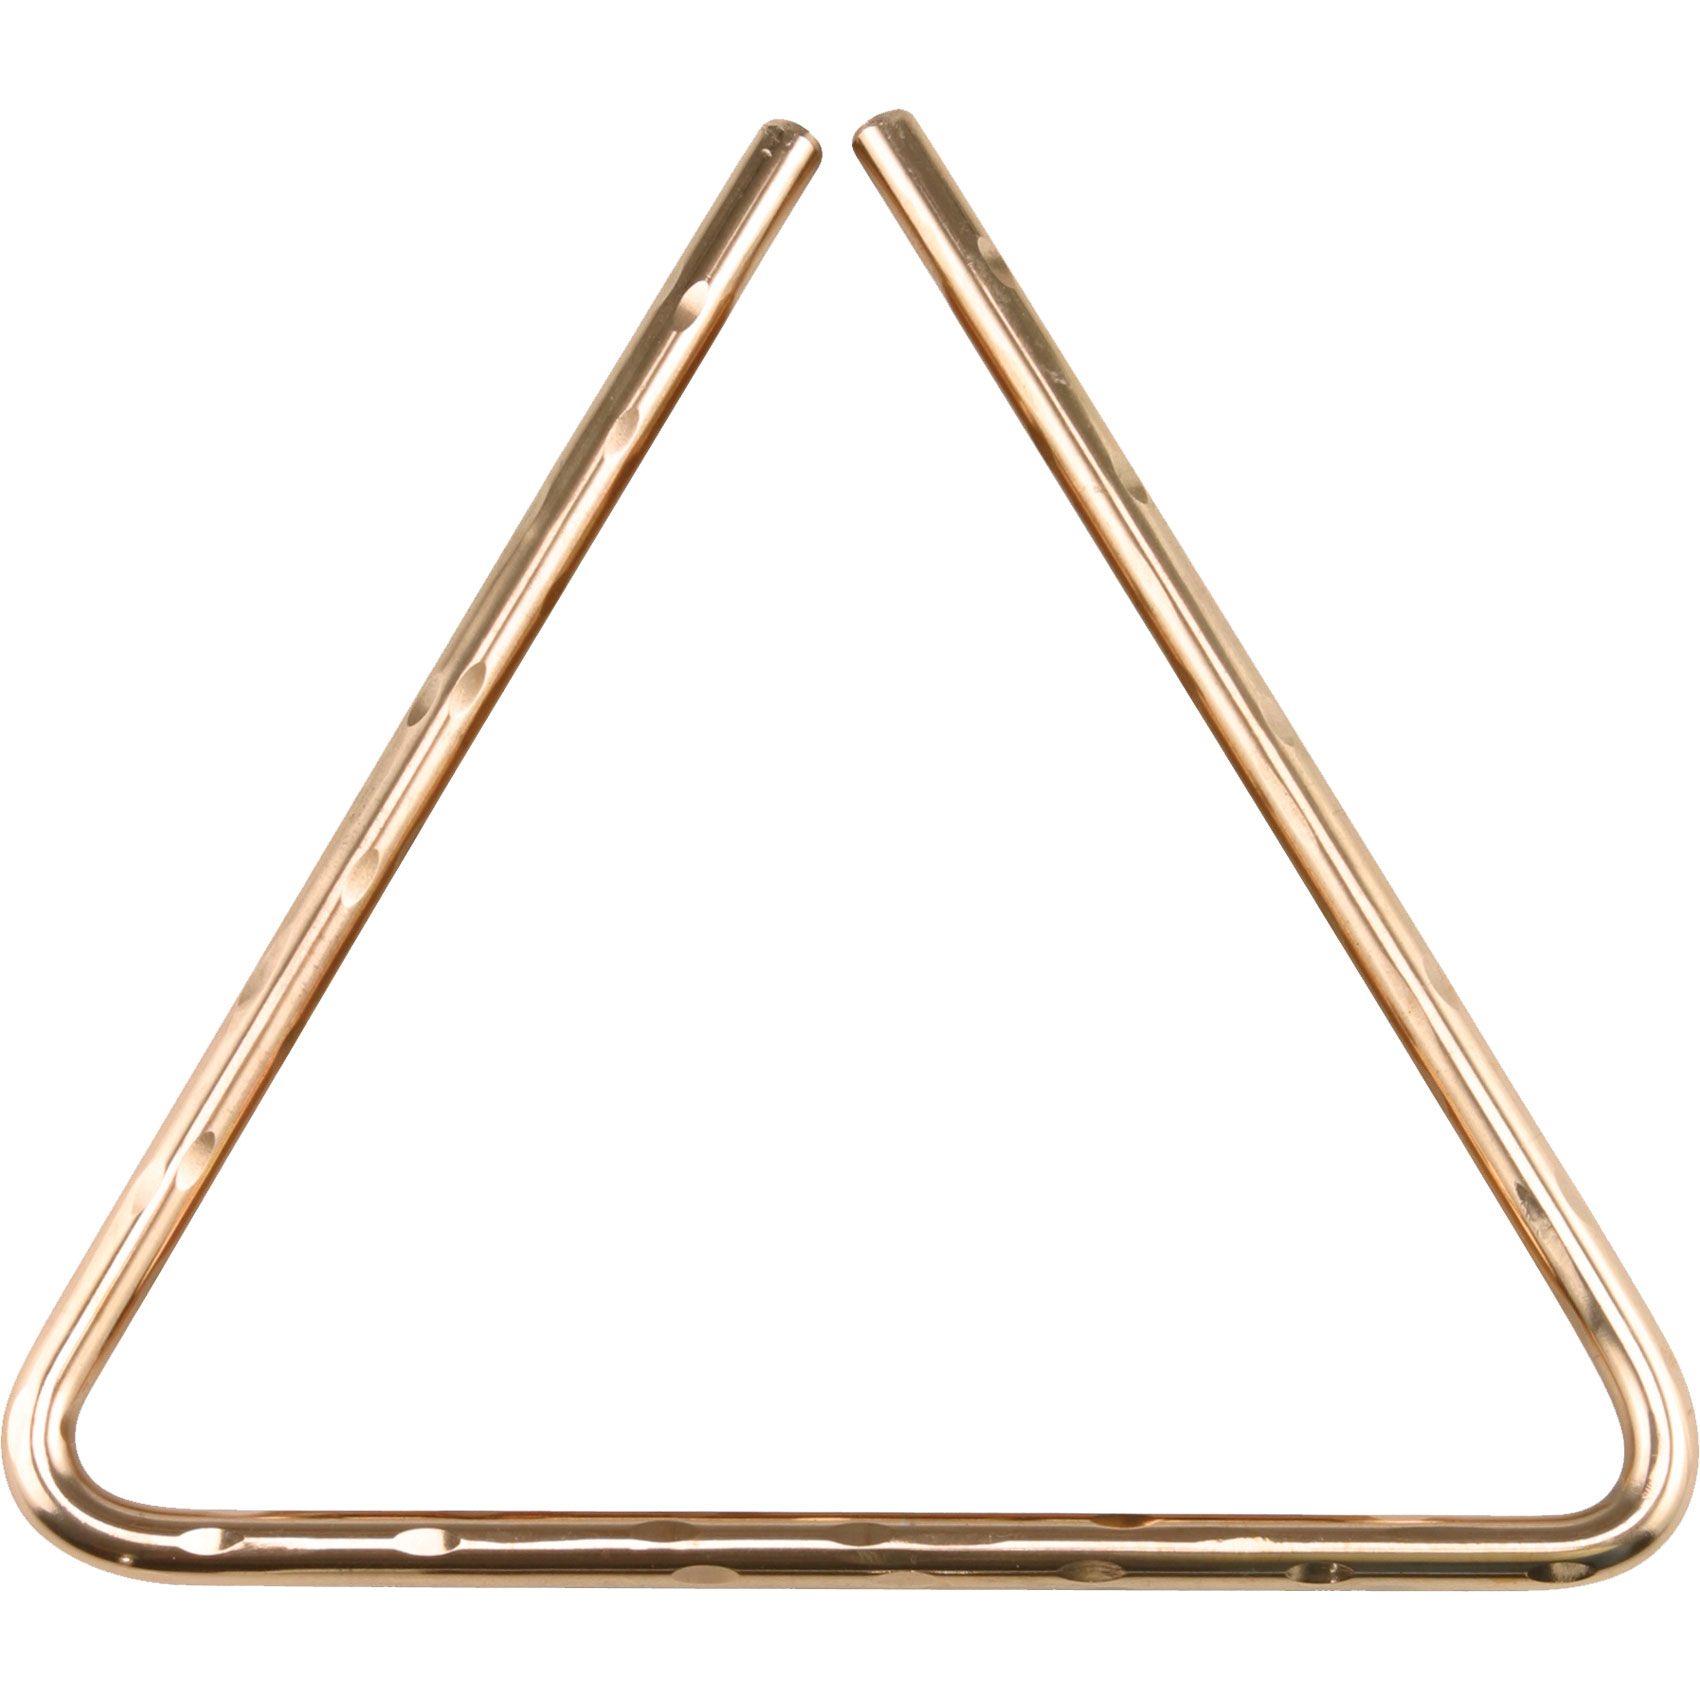 "Sabian 4"" Hand Hammered B8 Bronze Triangle"